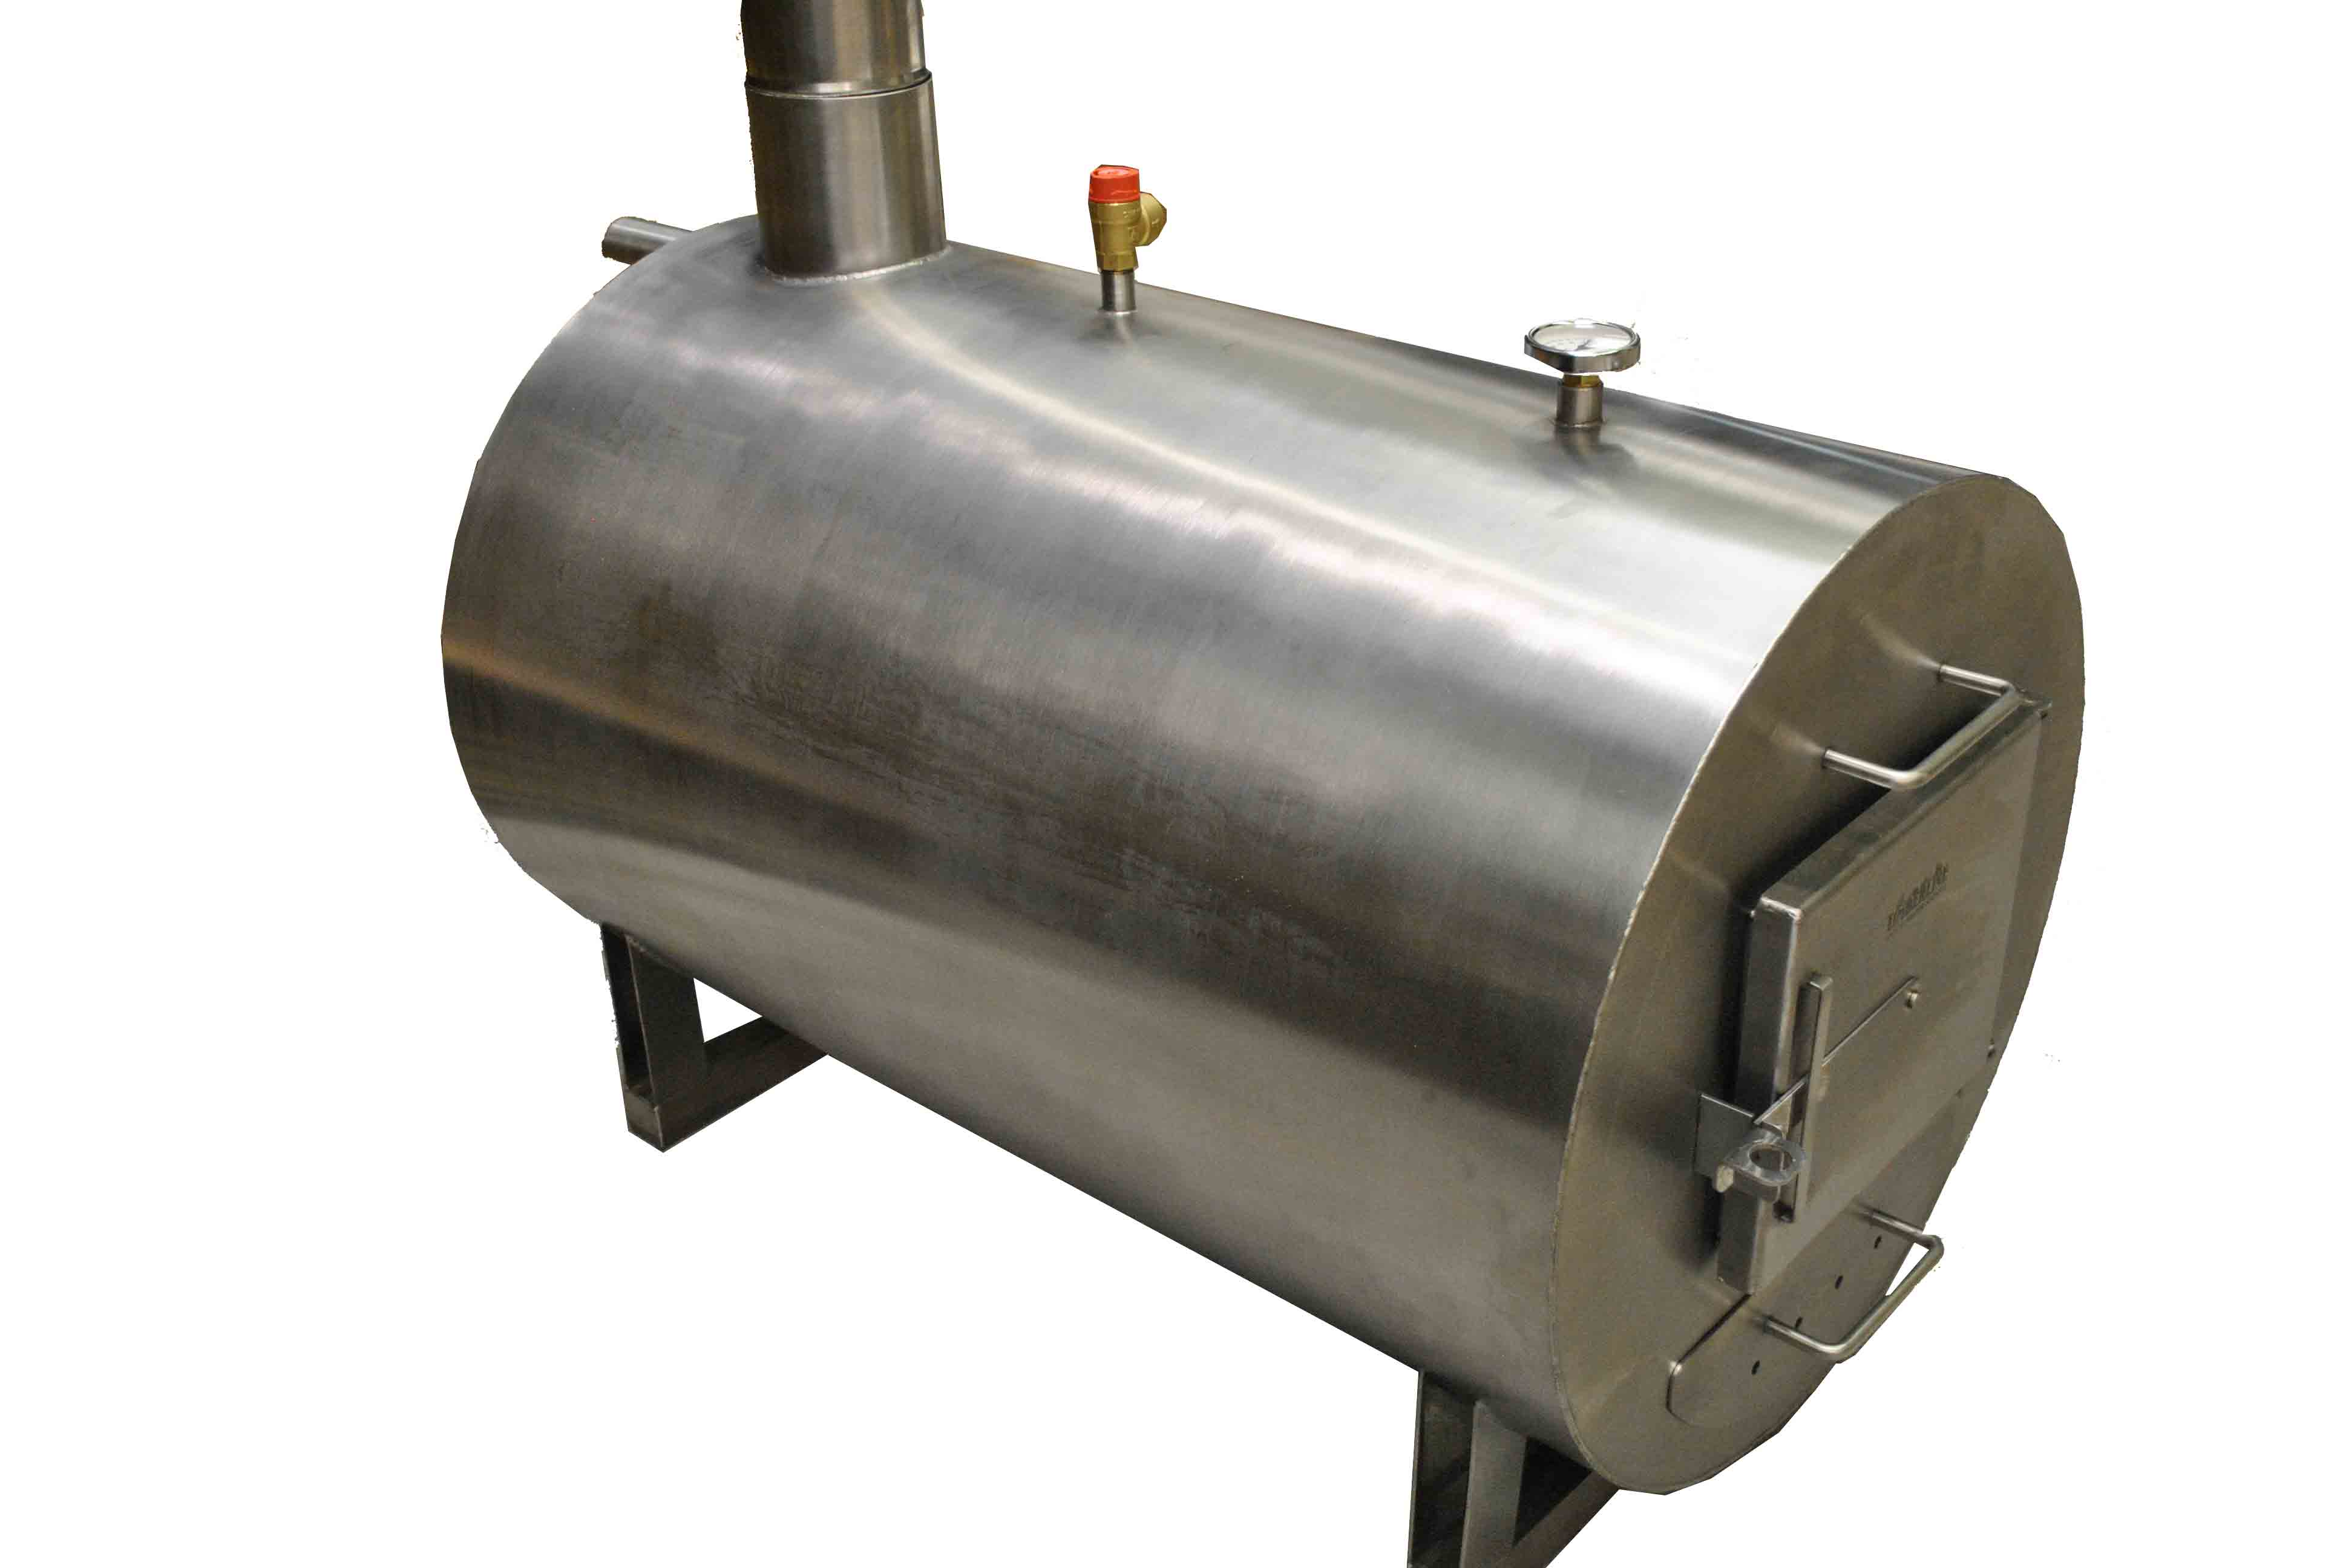 Wood fired hot tub heater wood fired pool heater small for Pool heater